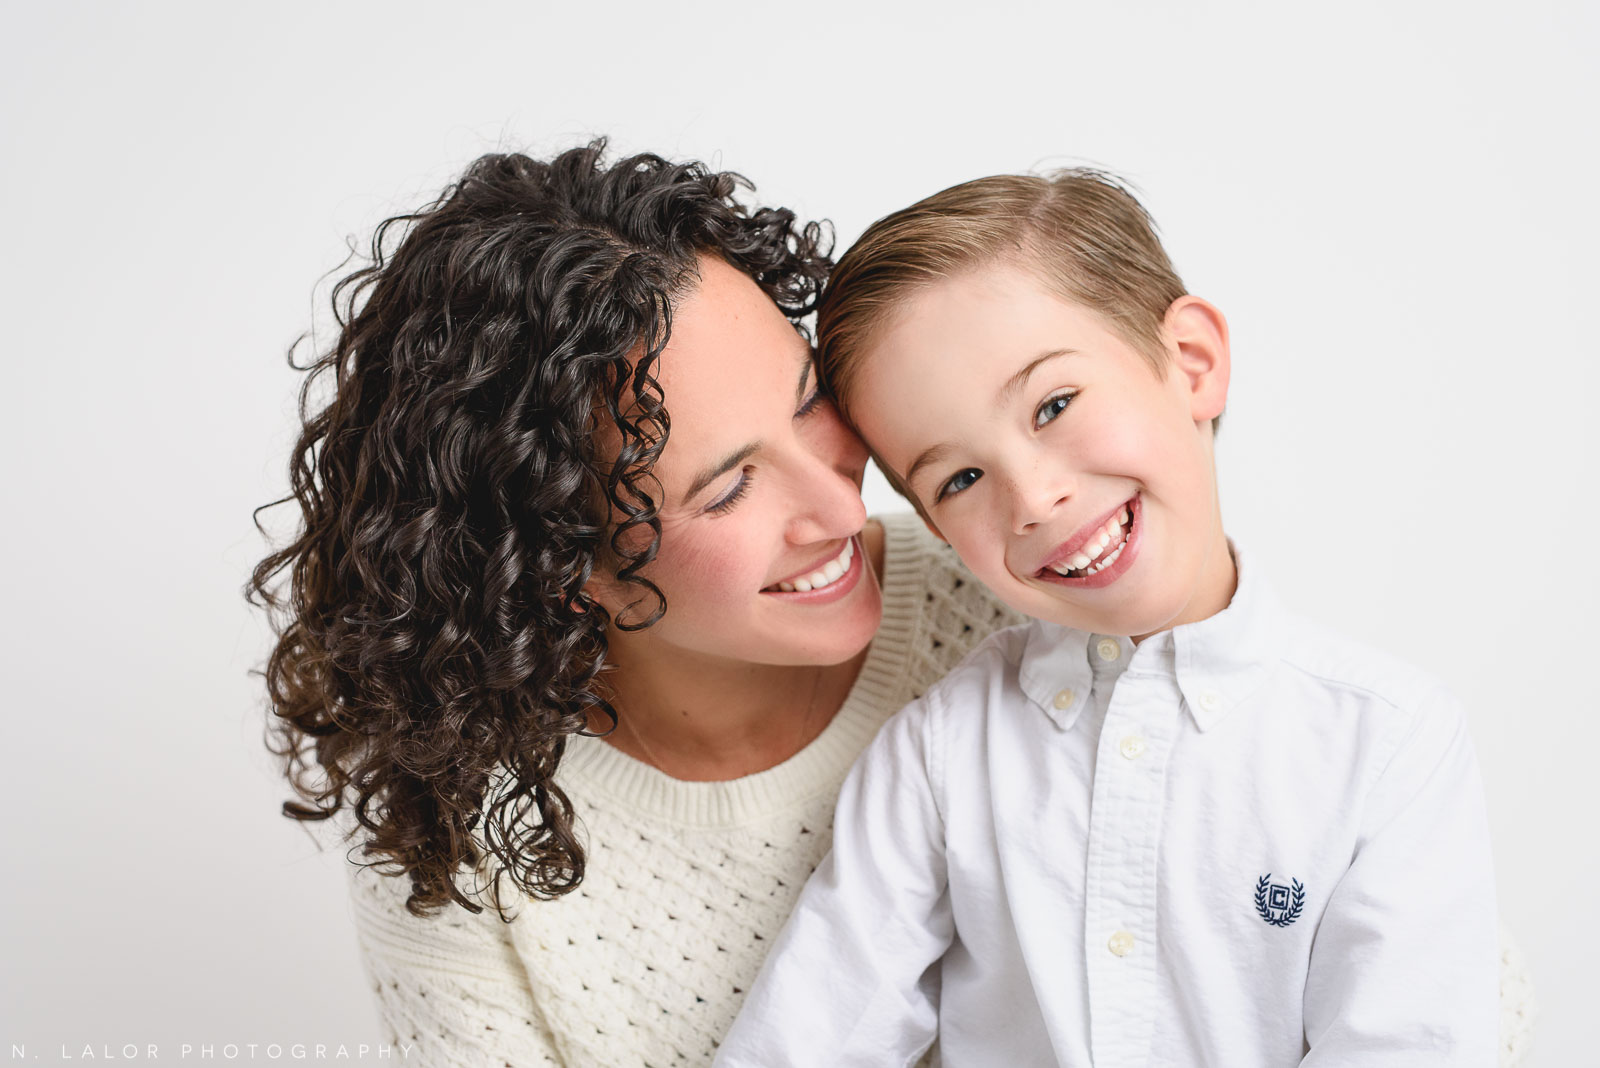 Mother and son. Studio family photoshoot with N. Lalor Photography in Riverside, Connecticut.